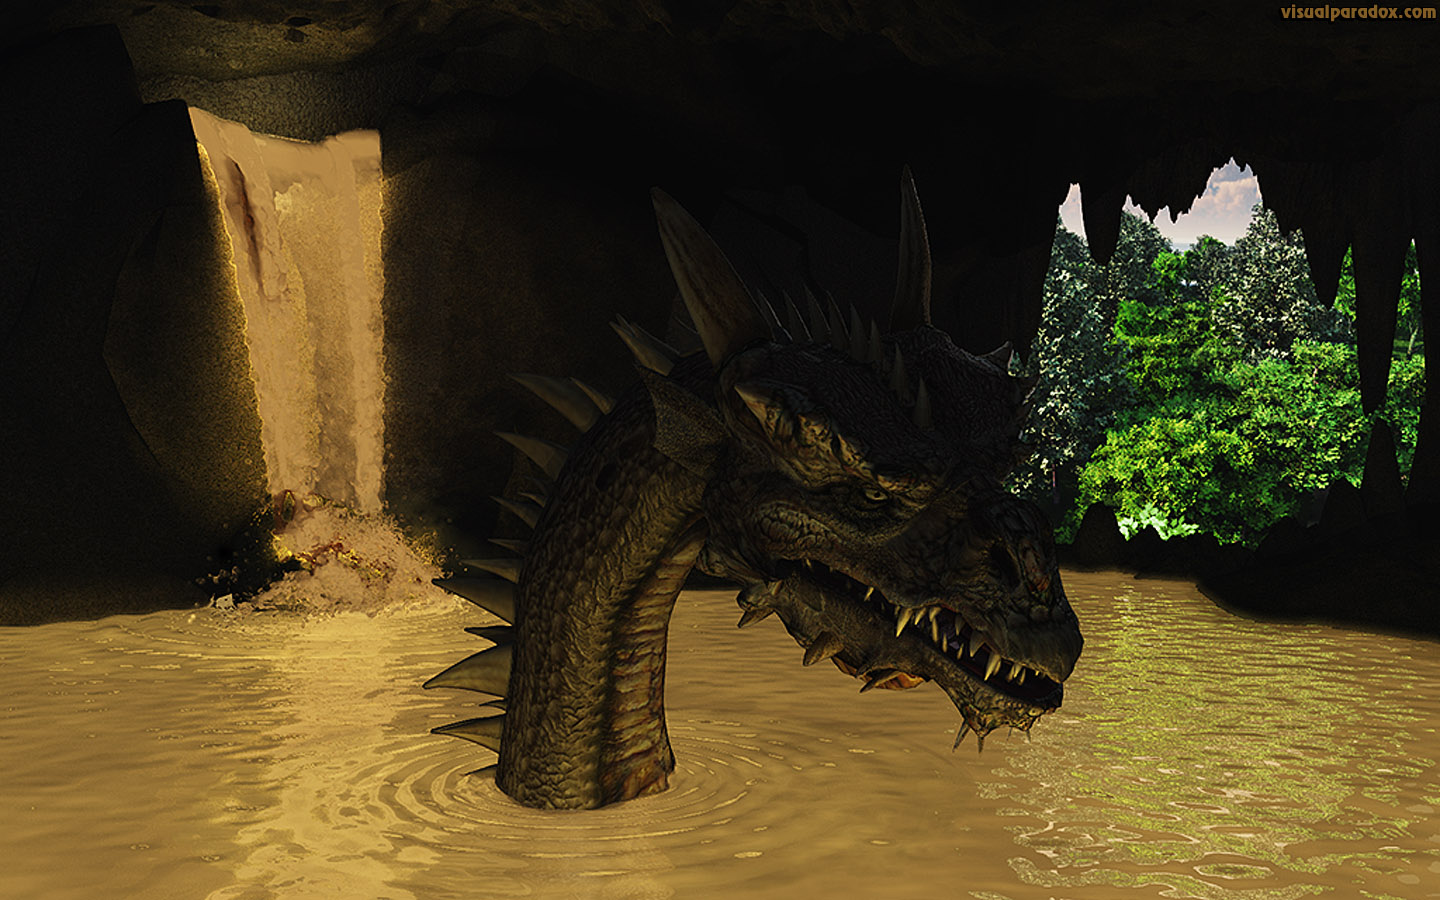 dragon, cave, den, lake, glowing, wyrm, water, toxic, monster, 3d, wallpaper